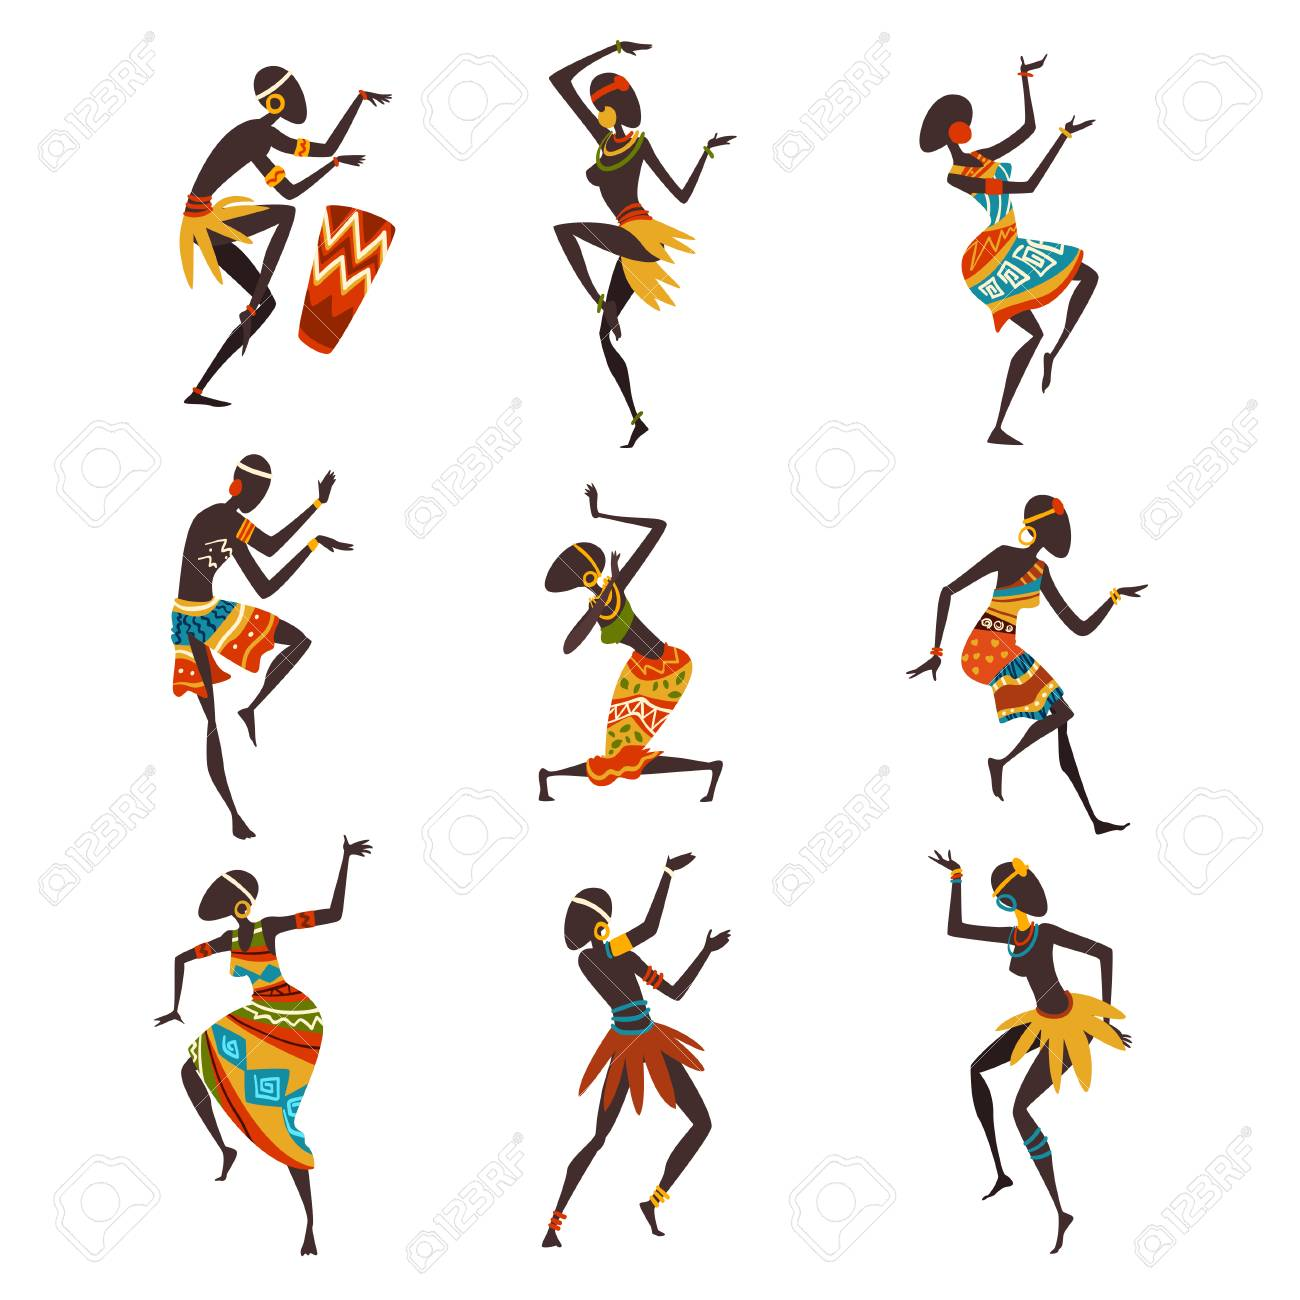 African People Dancing Folk or Ritual Dance Set, Aboriginal Dancers in Bright Traditional Ethnic Clothing Vector Illustration on White Background. - 124611745